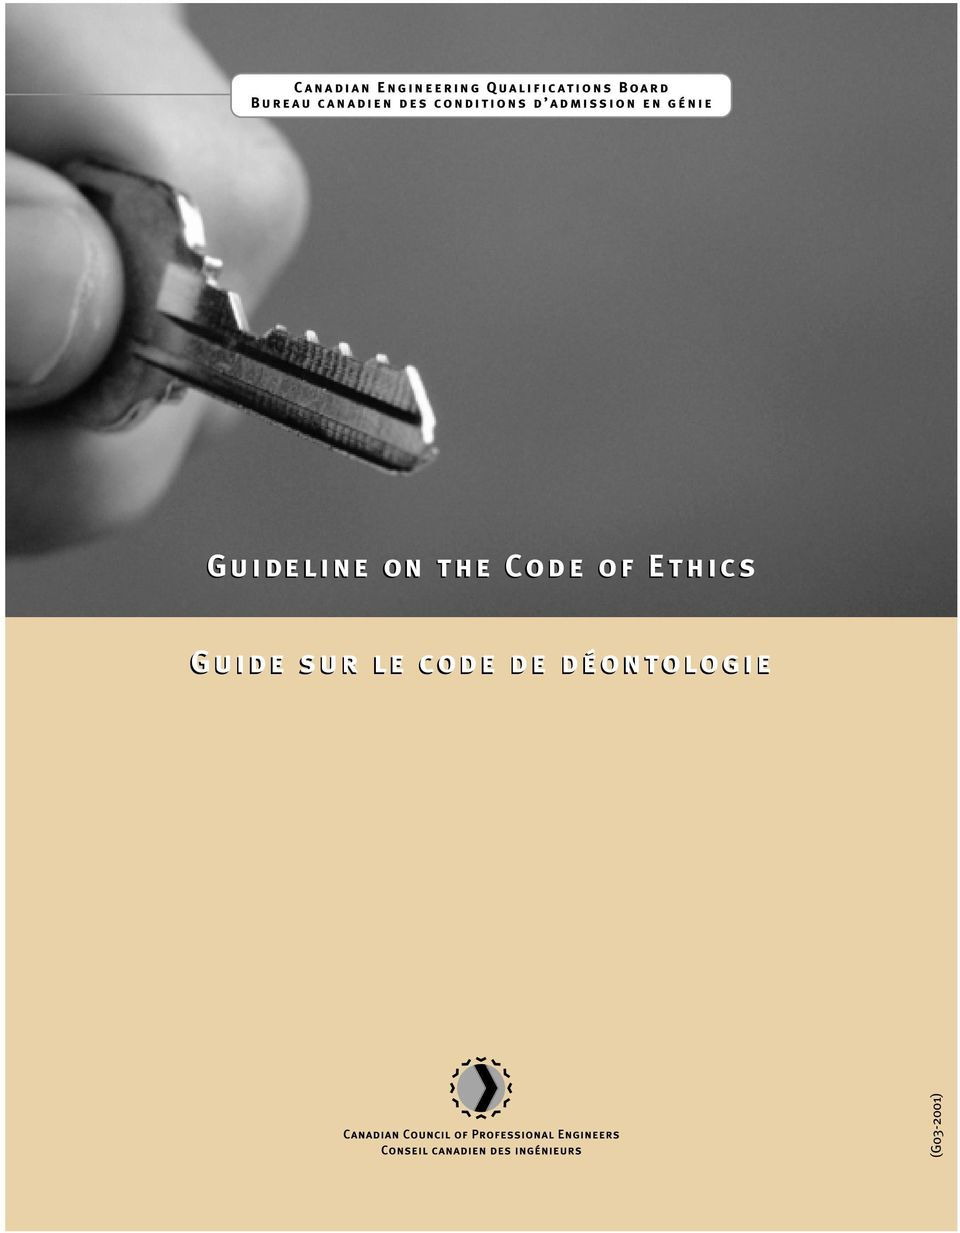 en génie Guideline on the Code of Ethics